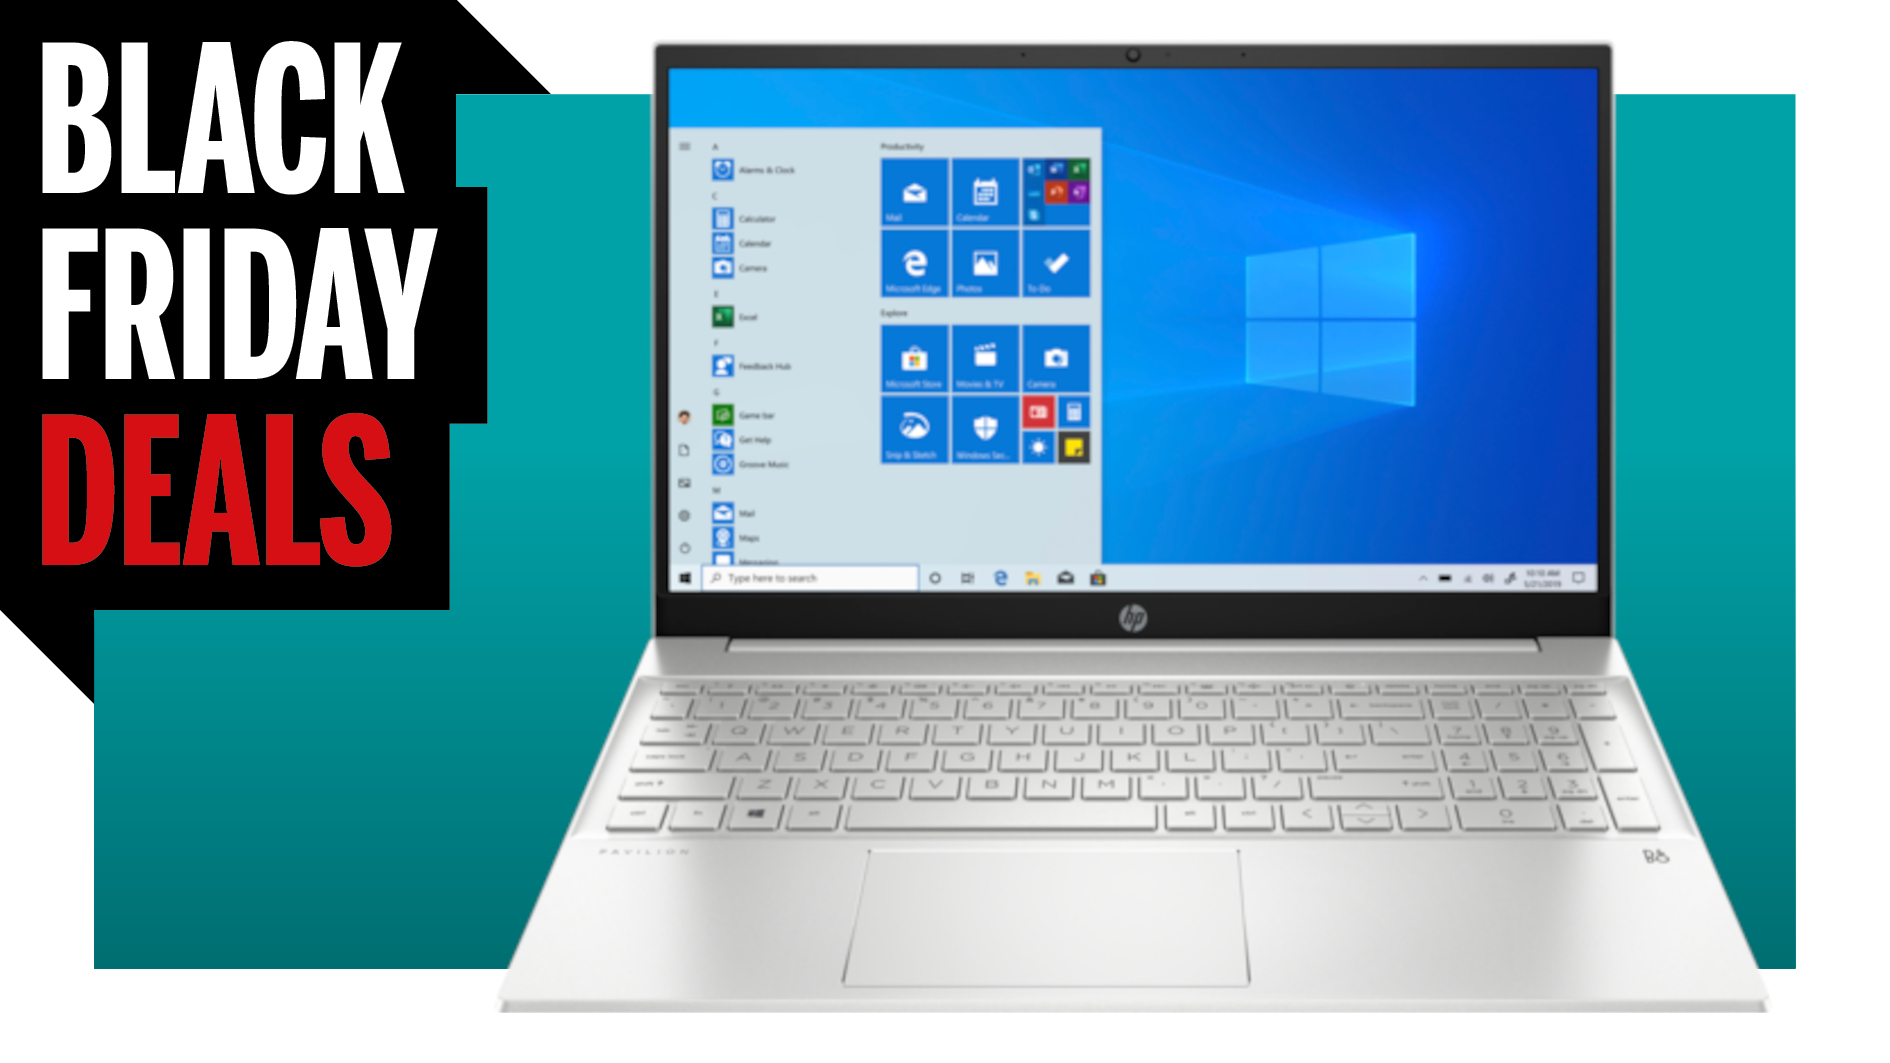 This $400 Ryzen HP laptop is the perfect budget option for students and parents